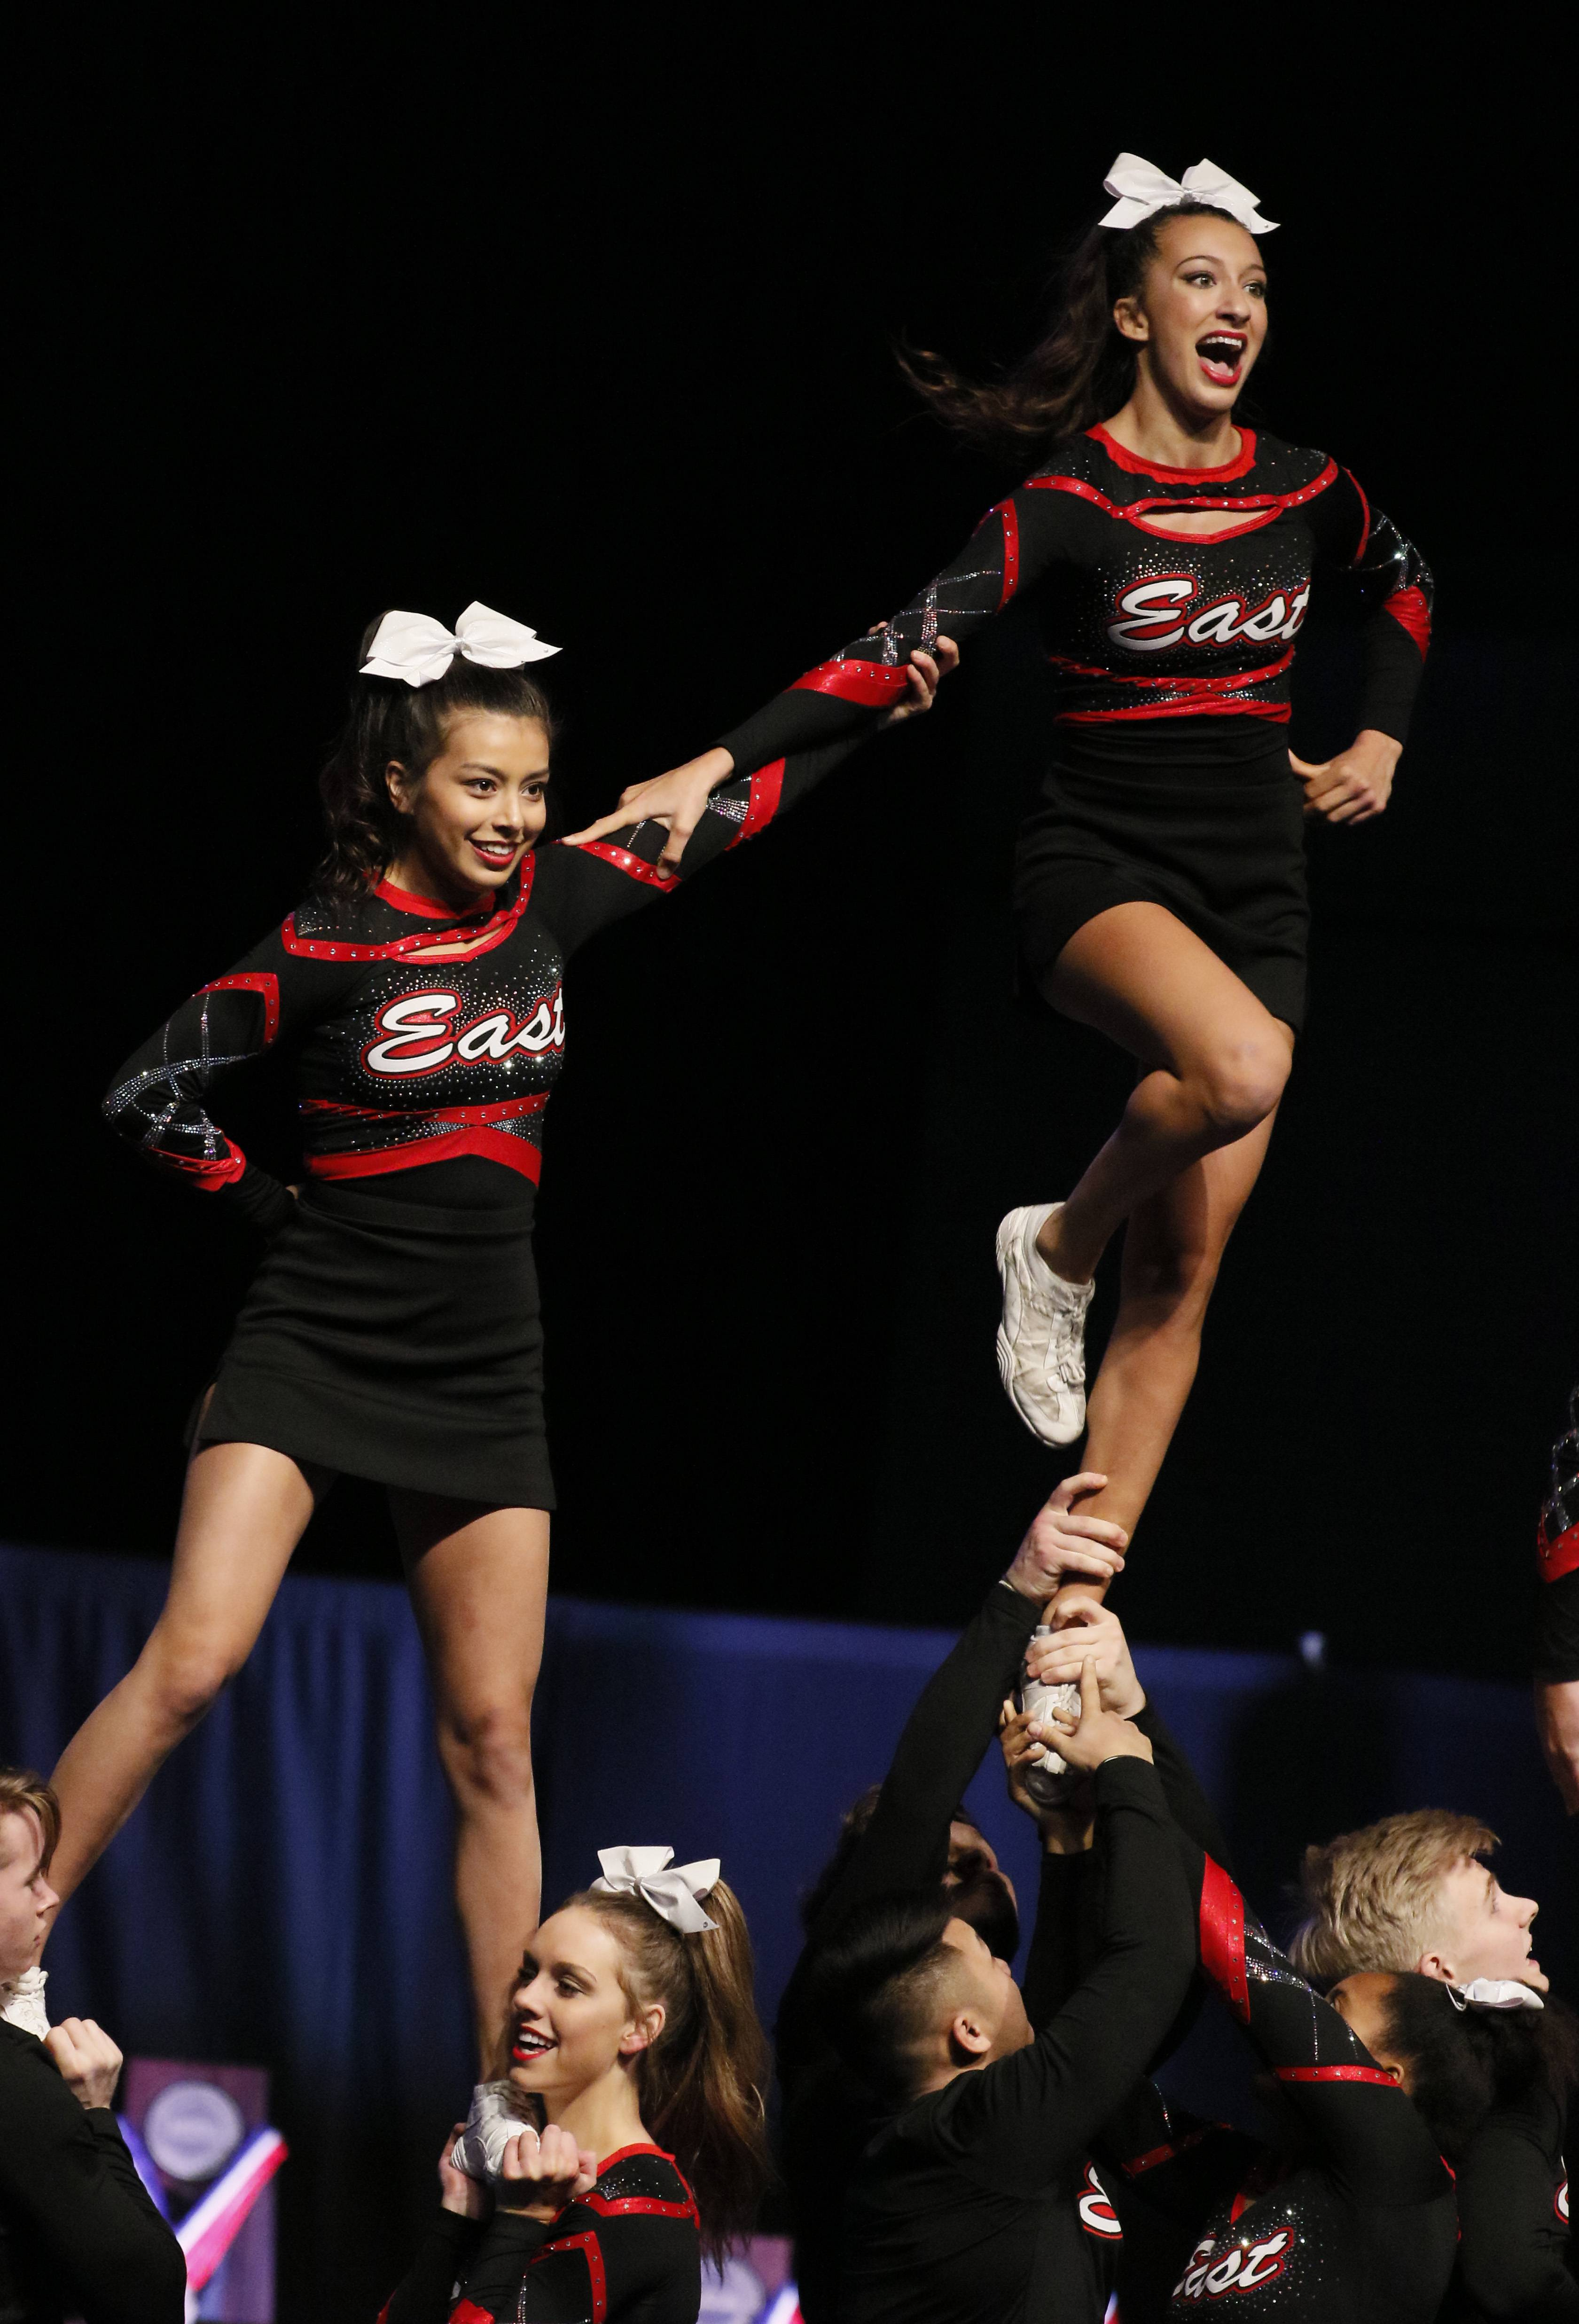 Glenbard East High School competes Friday during the preliminary round of the IHSA state cheerleading competition at the Grossinger Motors Arena in Bloomington.